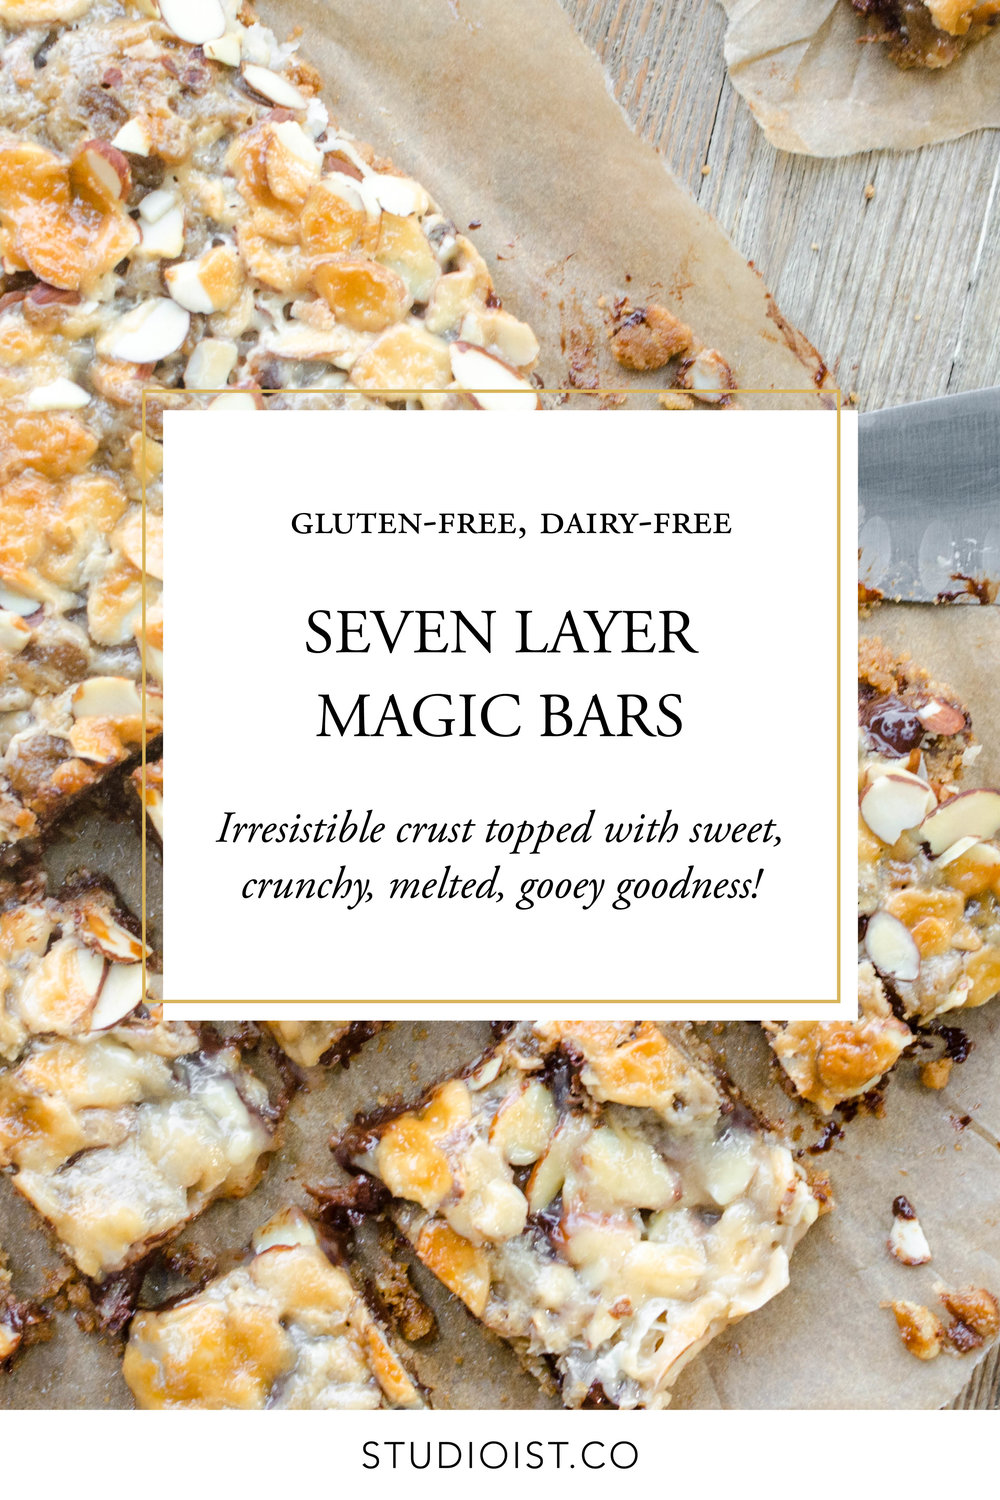 Studioist_Pinterest Design_Magic Bars.jpg